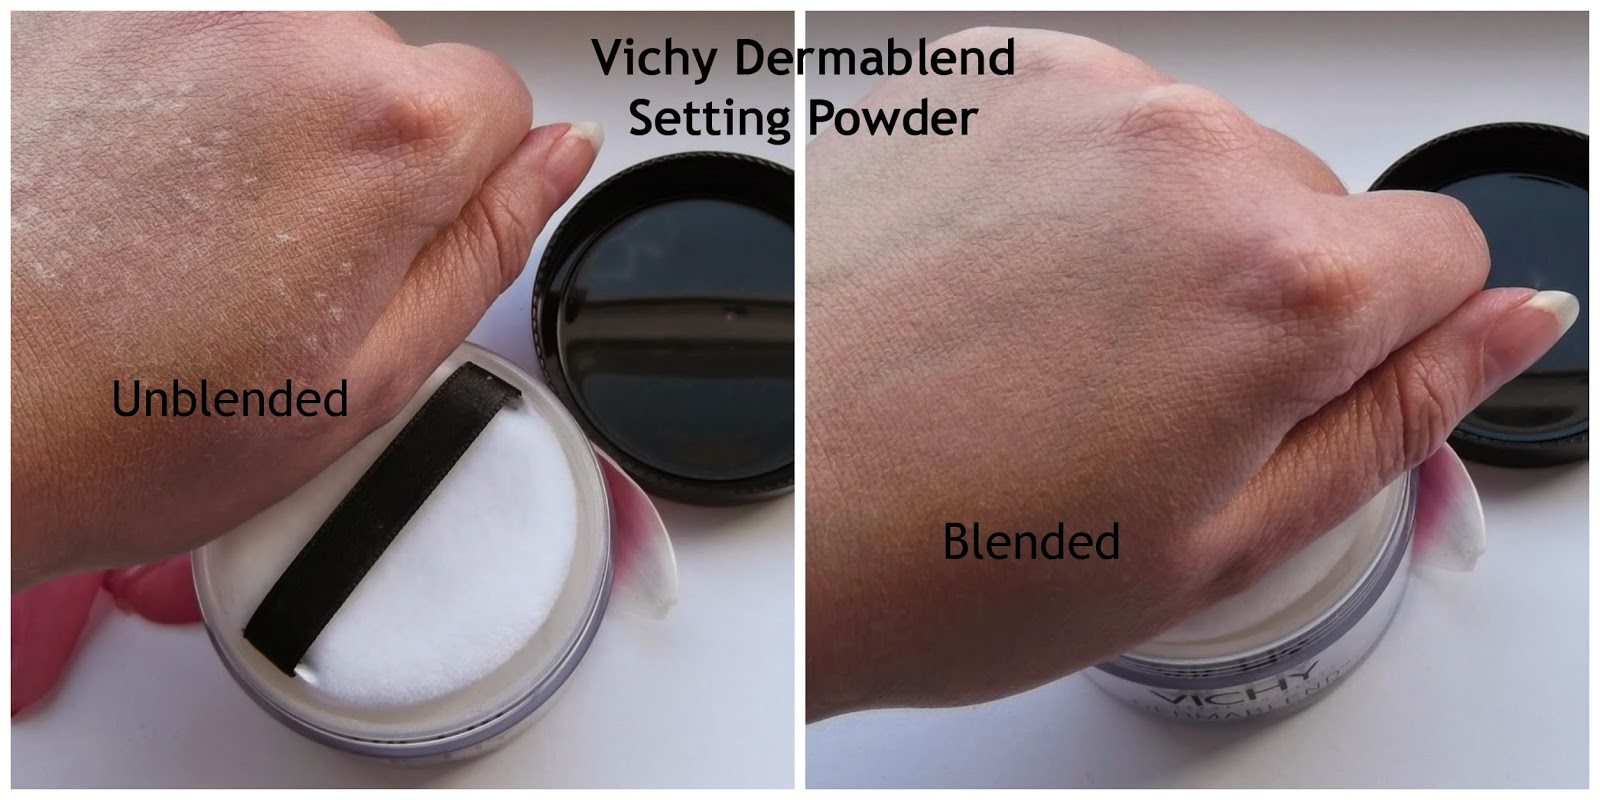 setting powder before and after. vichy dermablend setting powder review before and after